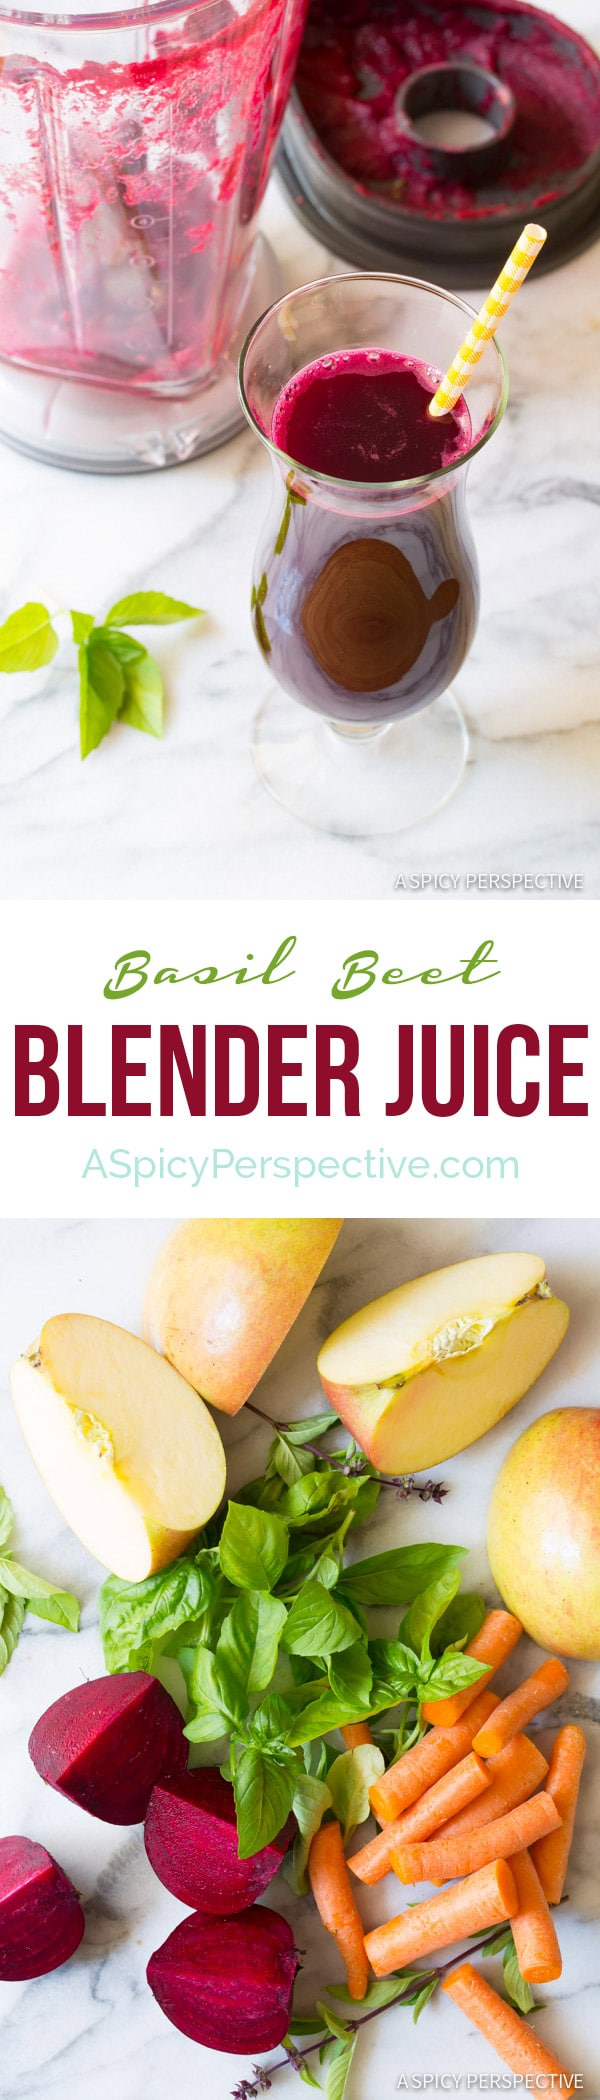 Fabulous 4 Ingredient Basil Beet Juice Recipe (Blender Juice) on ASpicyPerspective.com + An Awesome KitchenAid Torrent Magnetic Drive Blender Giveaway Valued at $599! #juice #giveaway